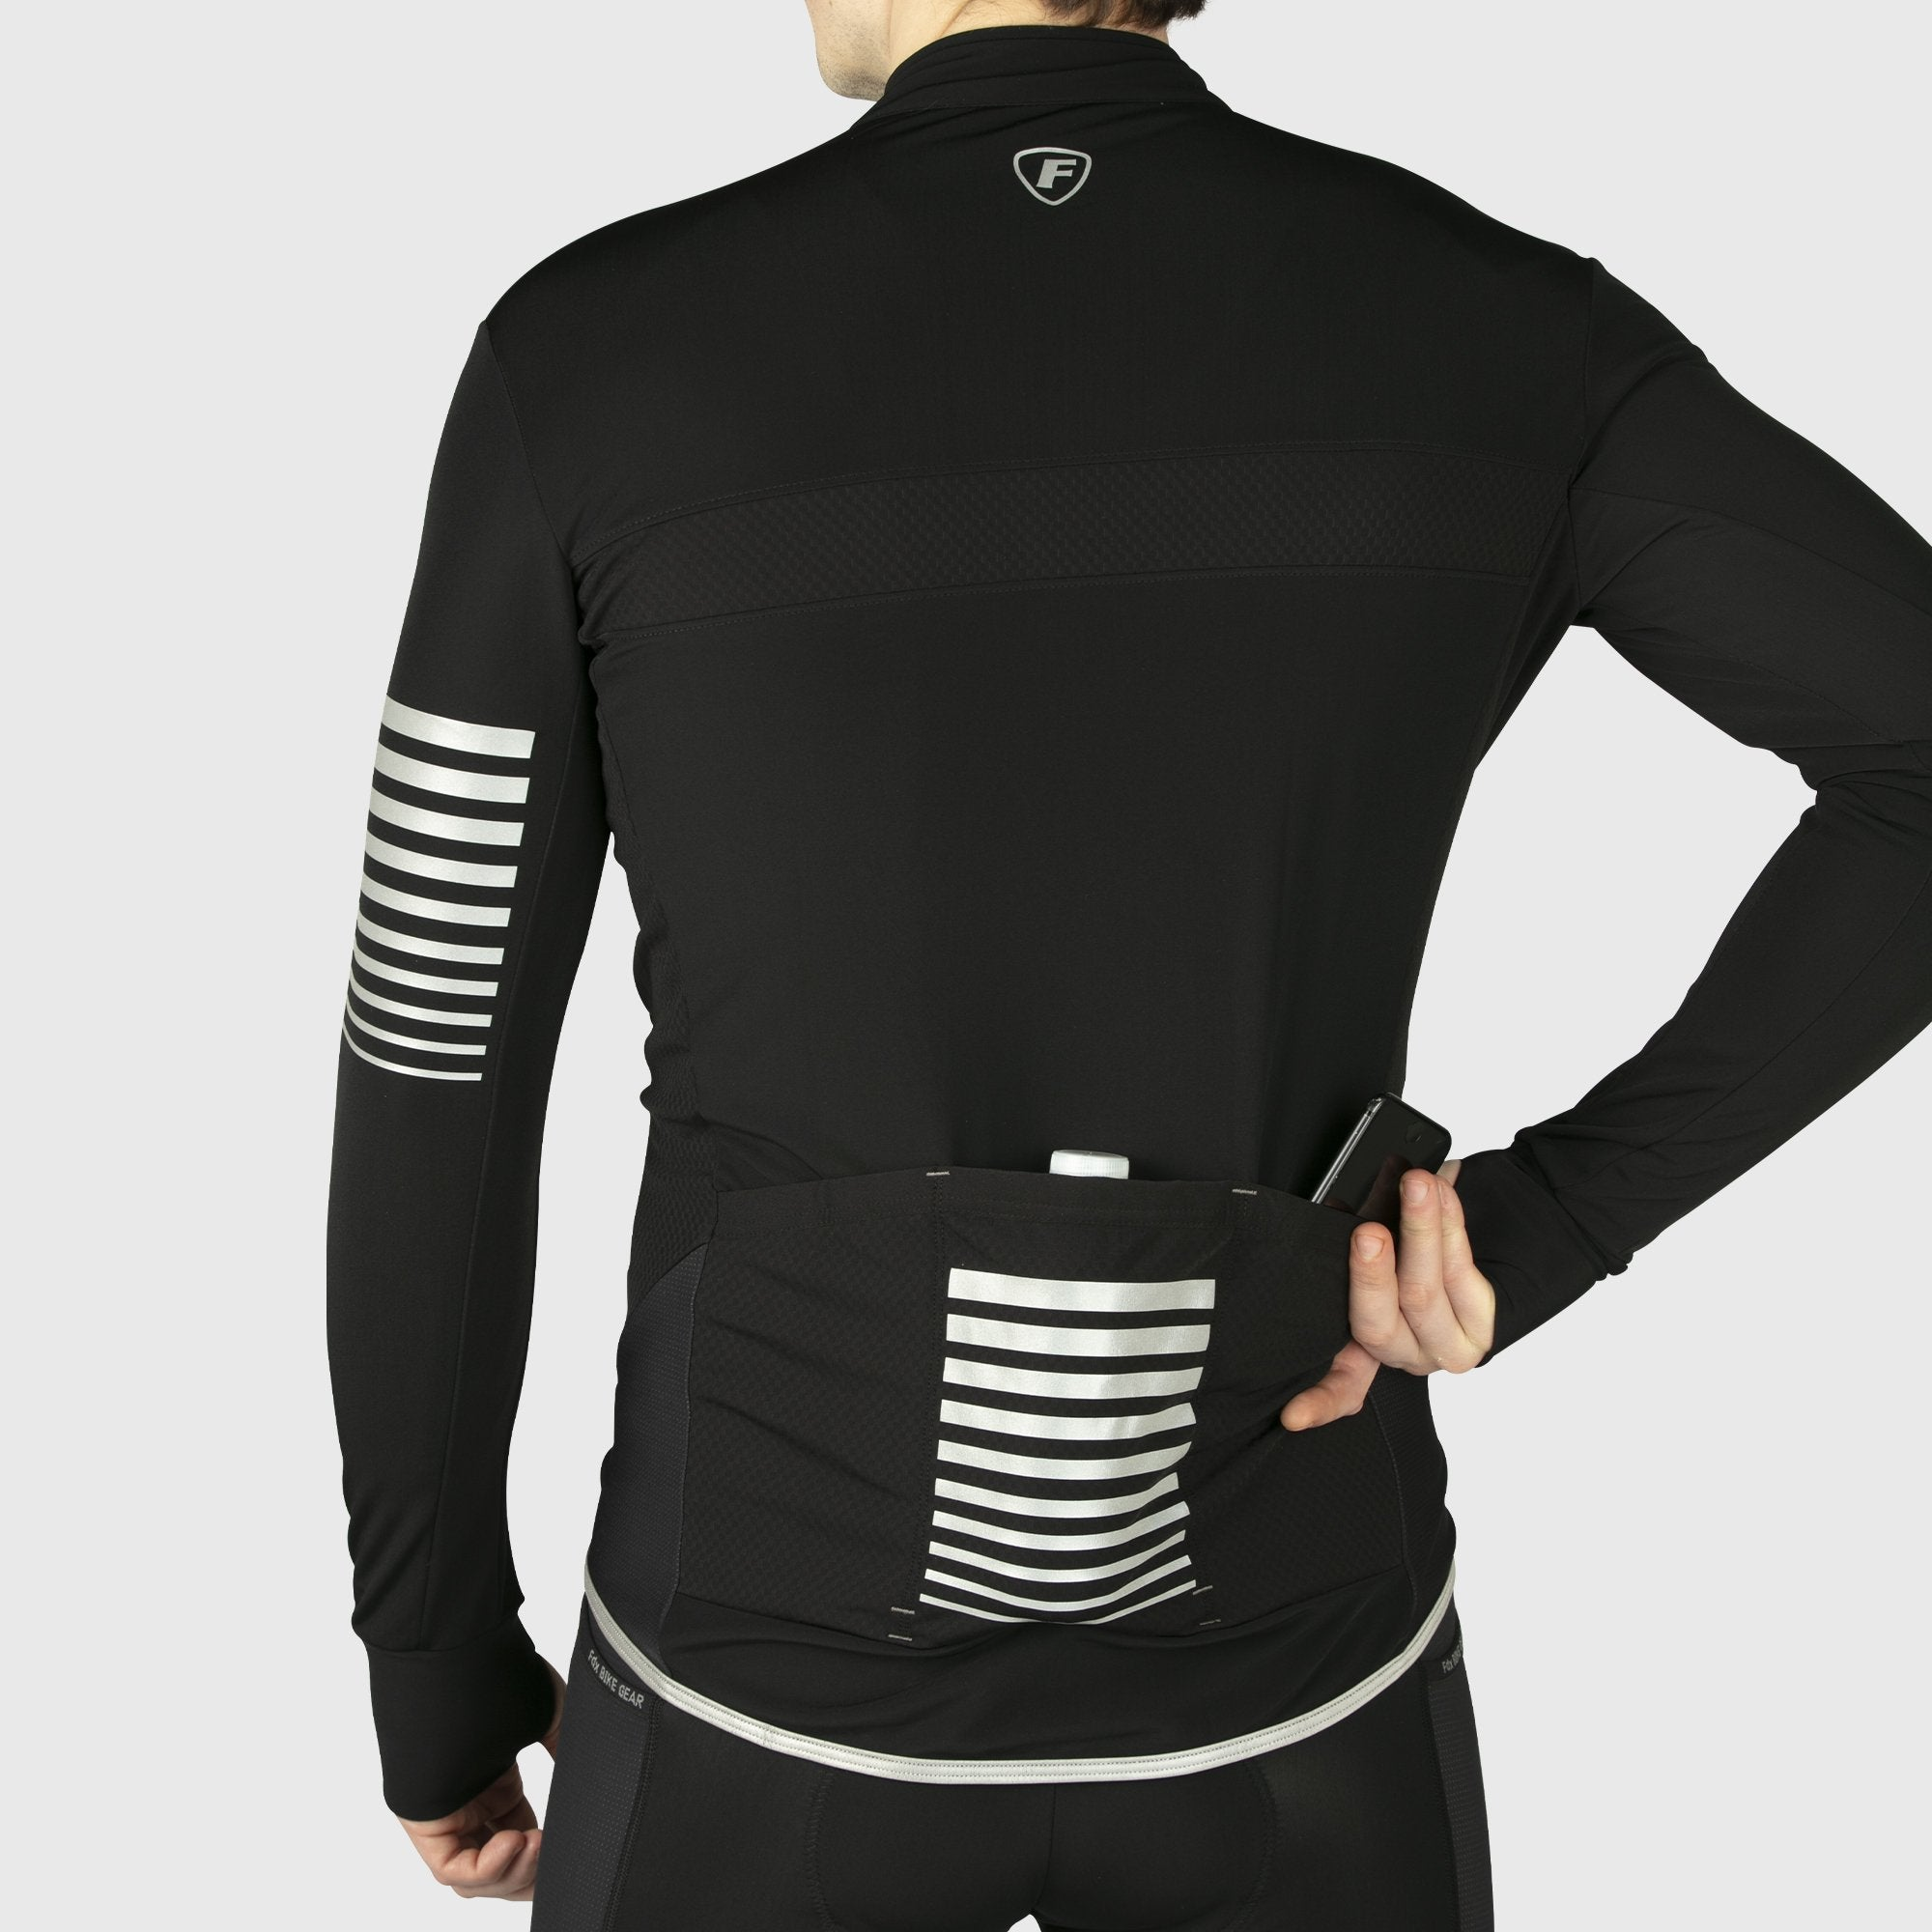 Fdx All Day Men's Long Sleeves Cycling Jersey Black